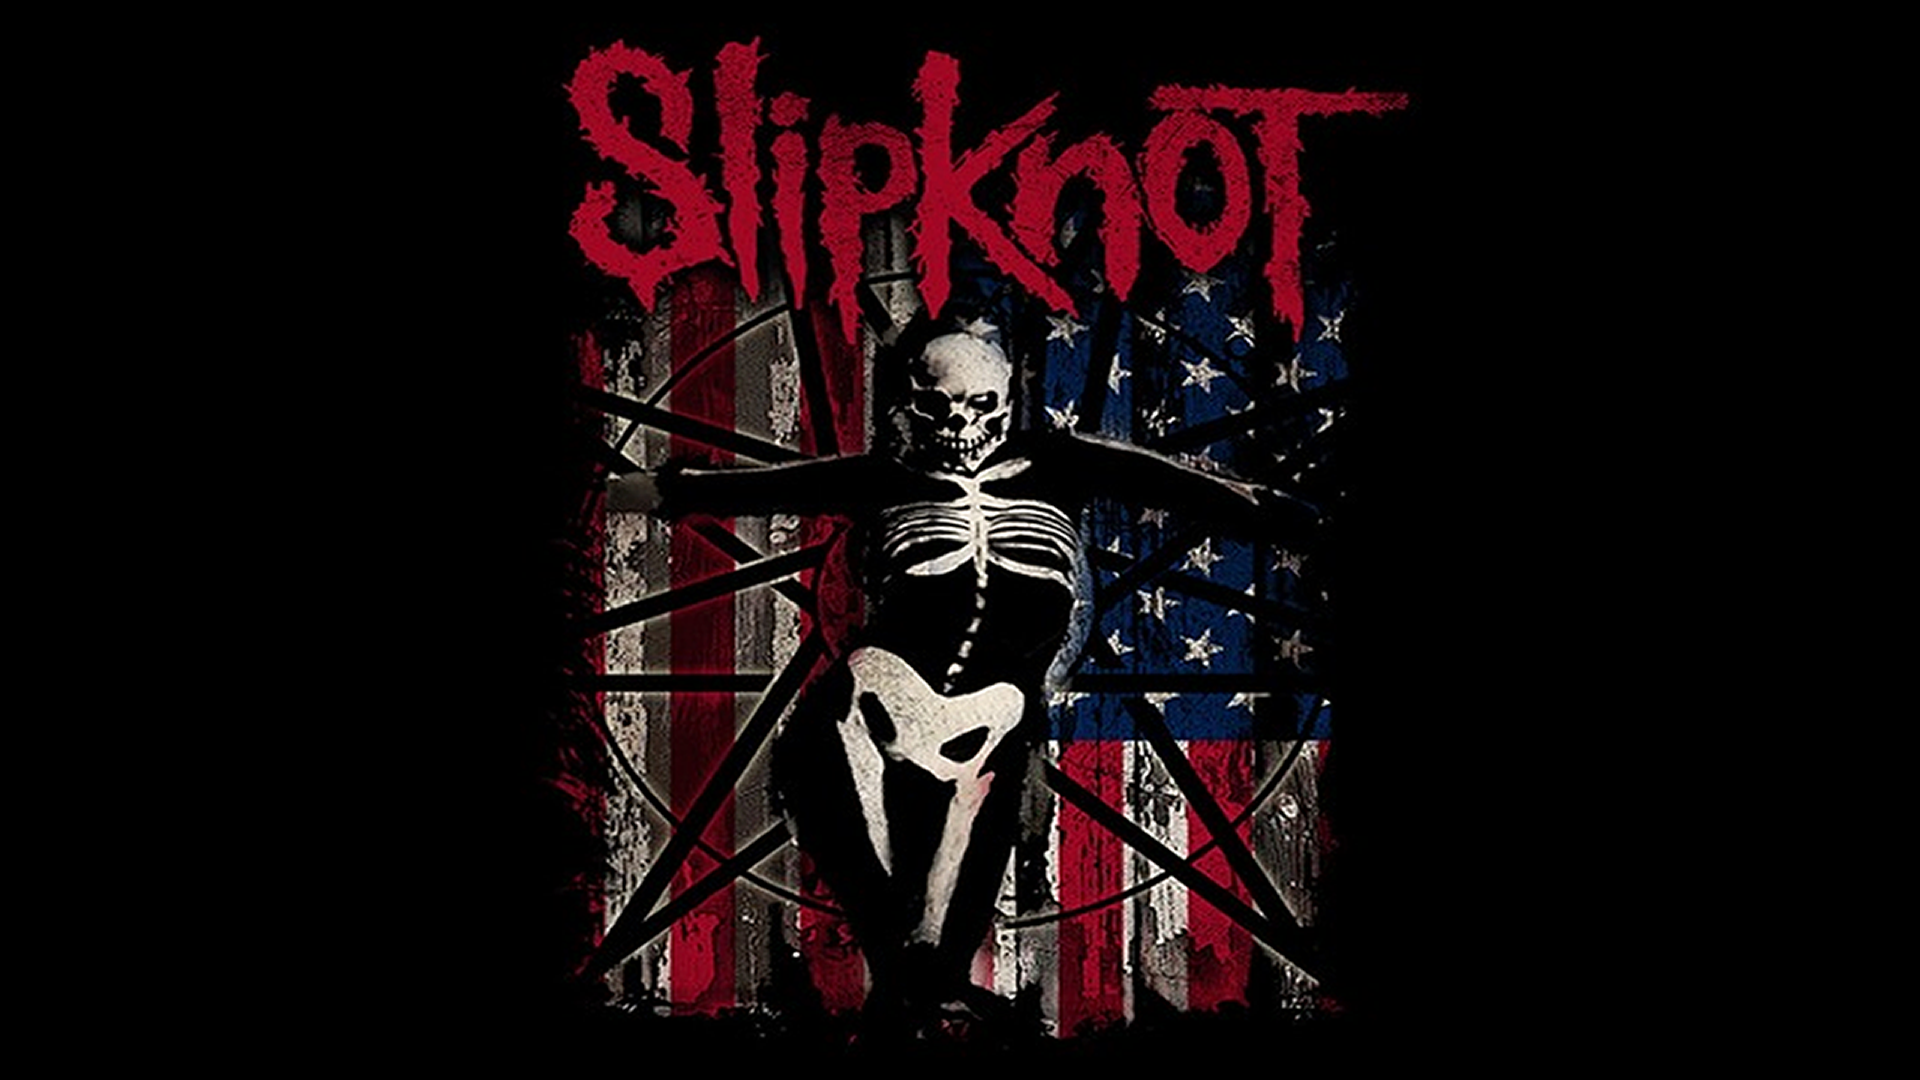 Slipknot american flag ps4wallpapers download wallpaper voltagebd Image collections